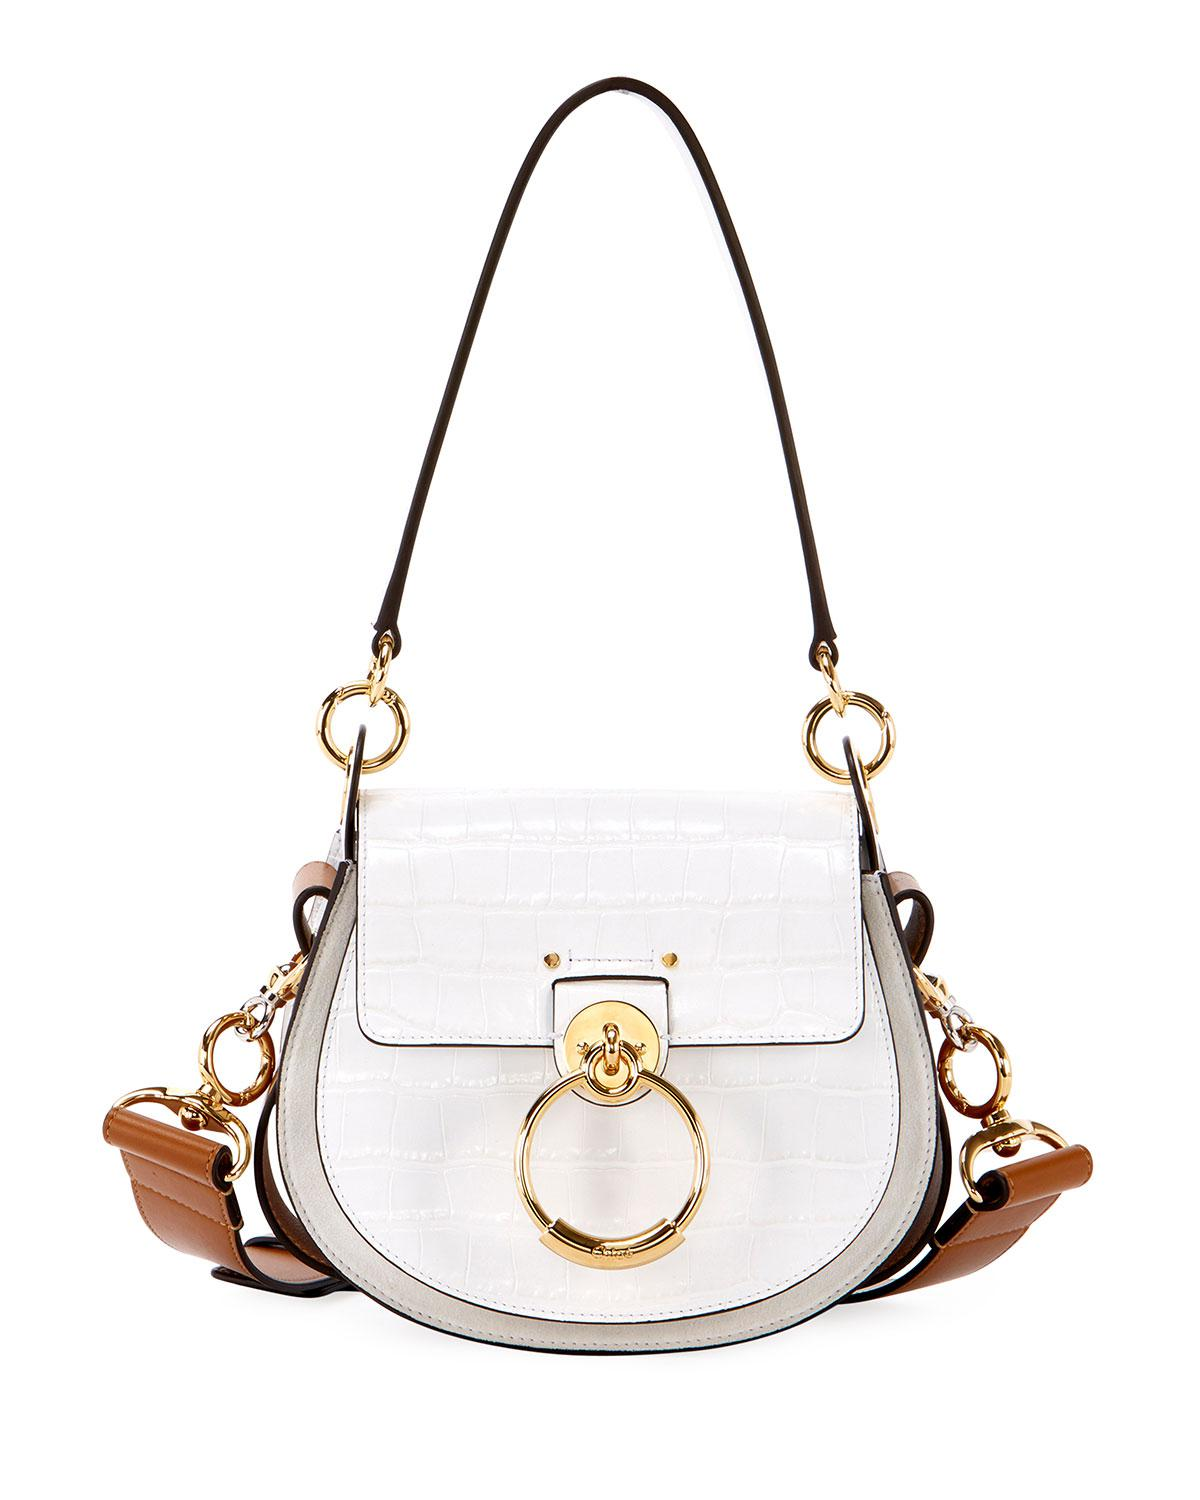 5b874ab99ef9 Lyst - Chloé Tess Small Embossed Leather Shoulder Bag in White ...